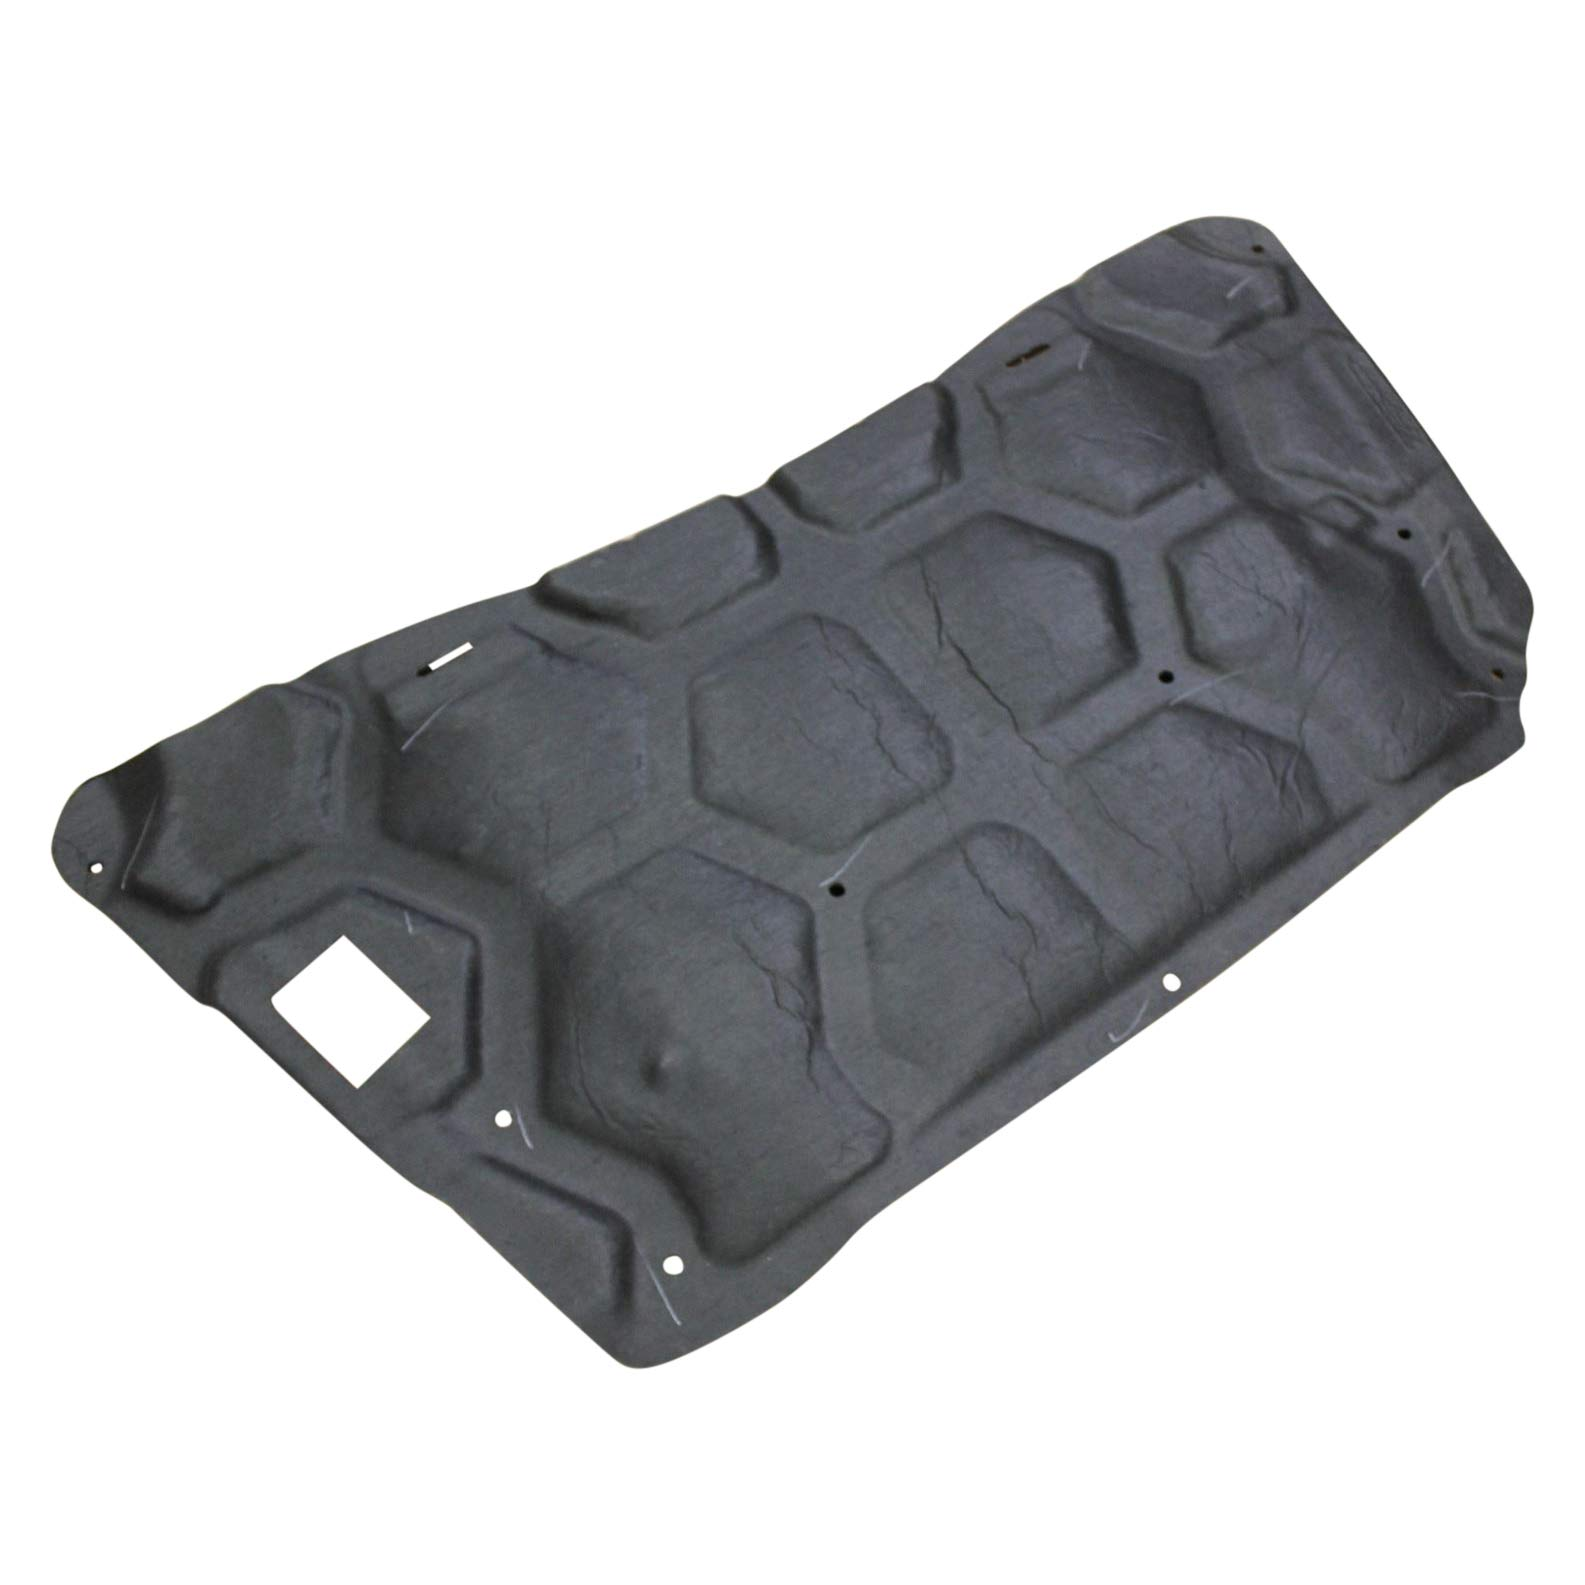 Ford Oem Hood Insulation Pad Dg1z16738a Image 2